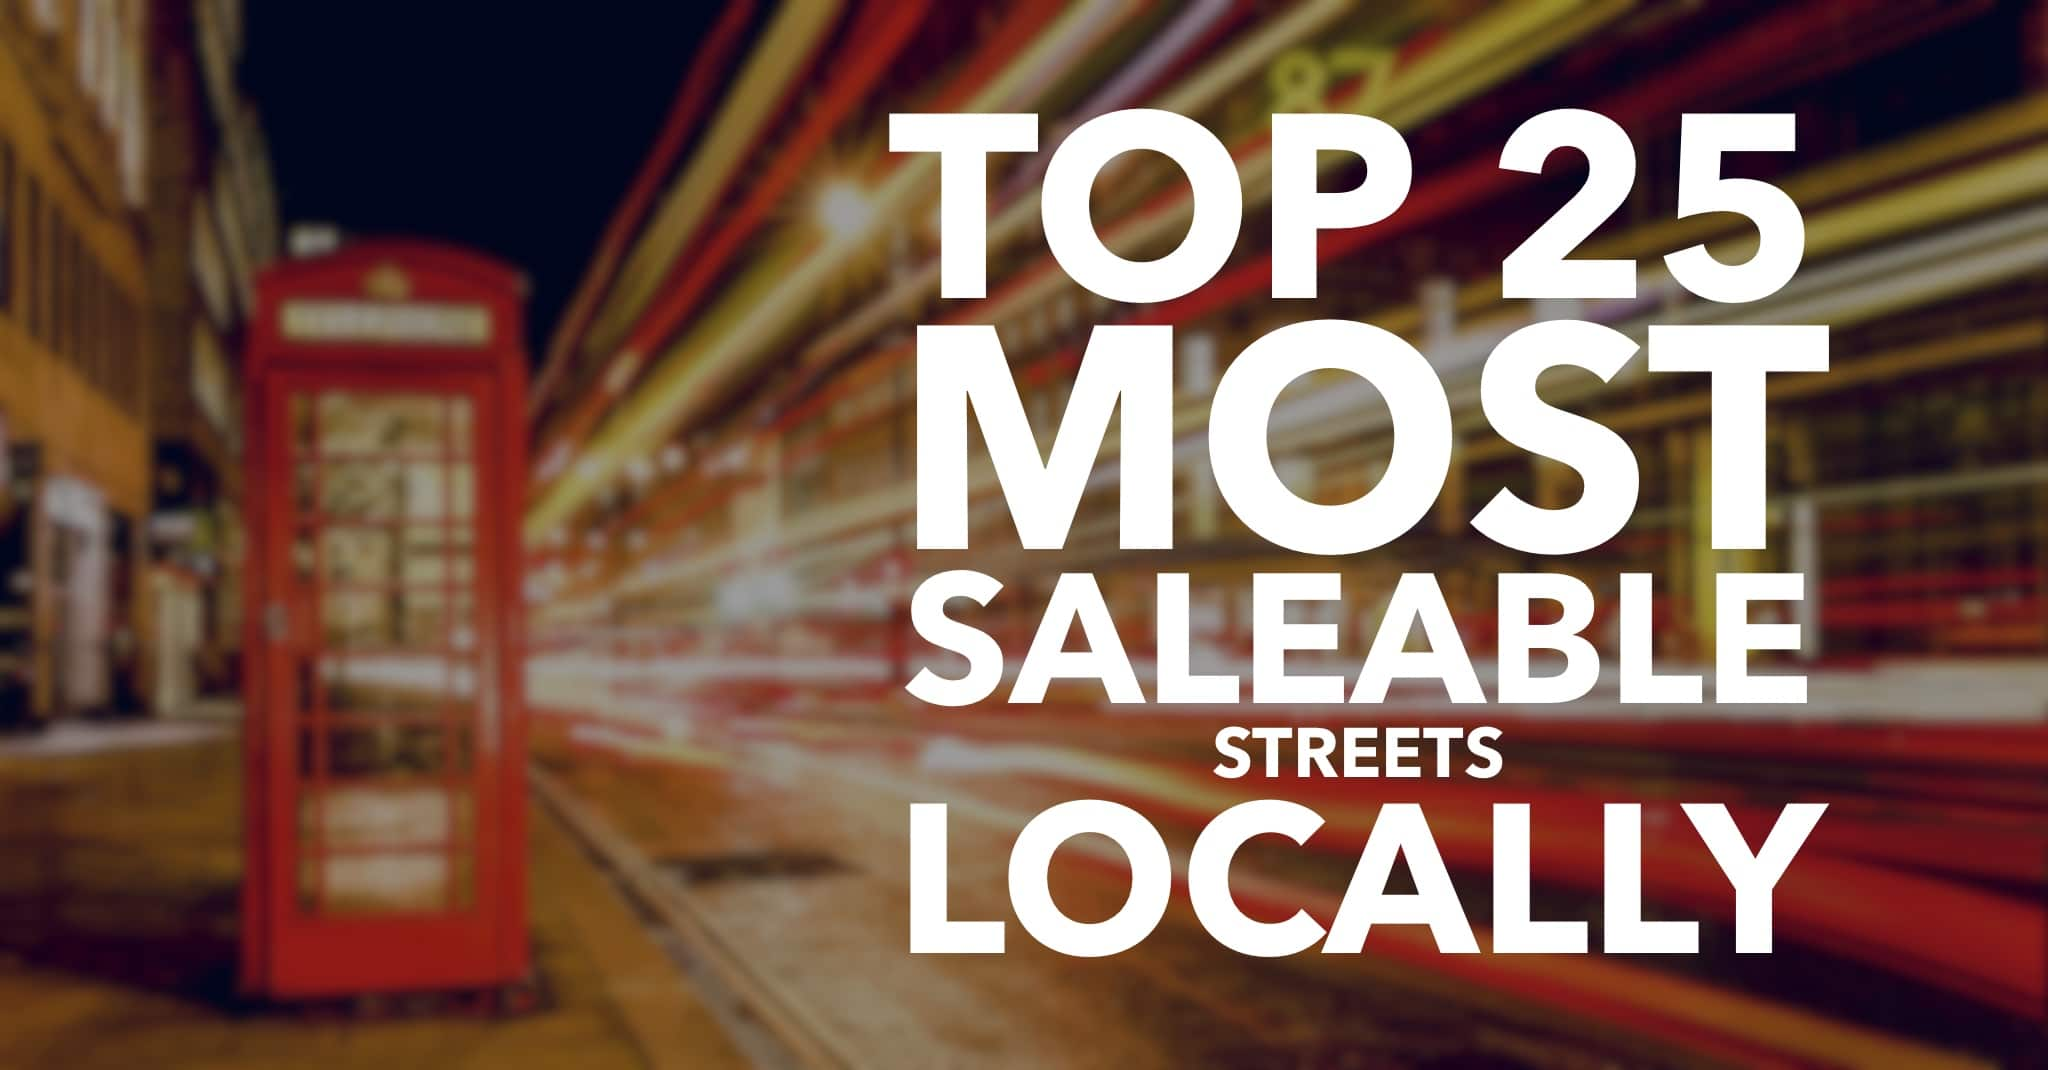 Top 25 Most Saleable Streets in Canterbury